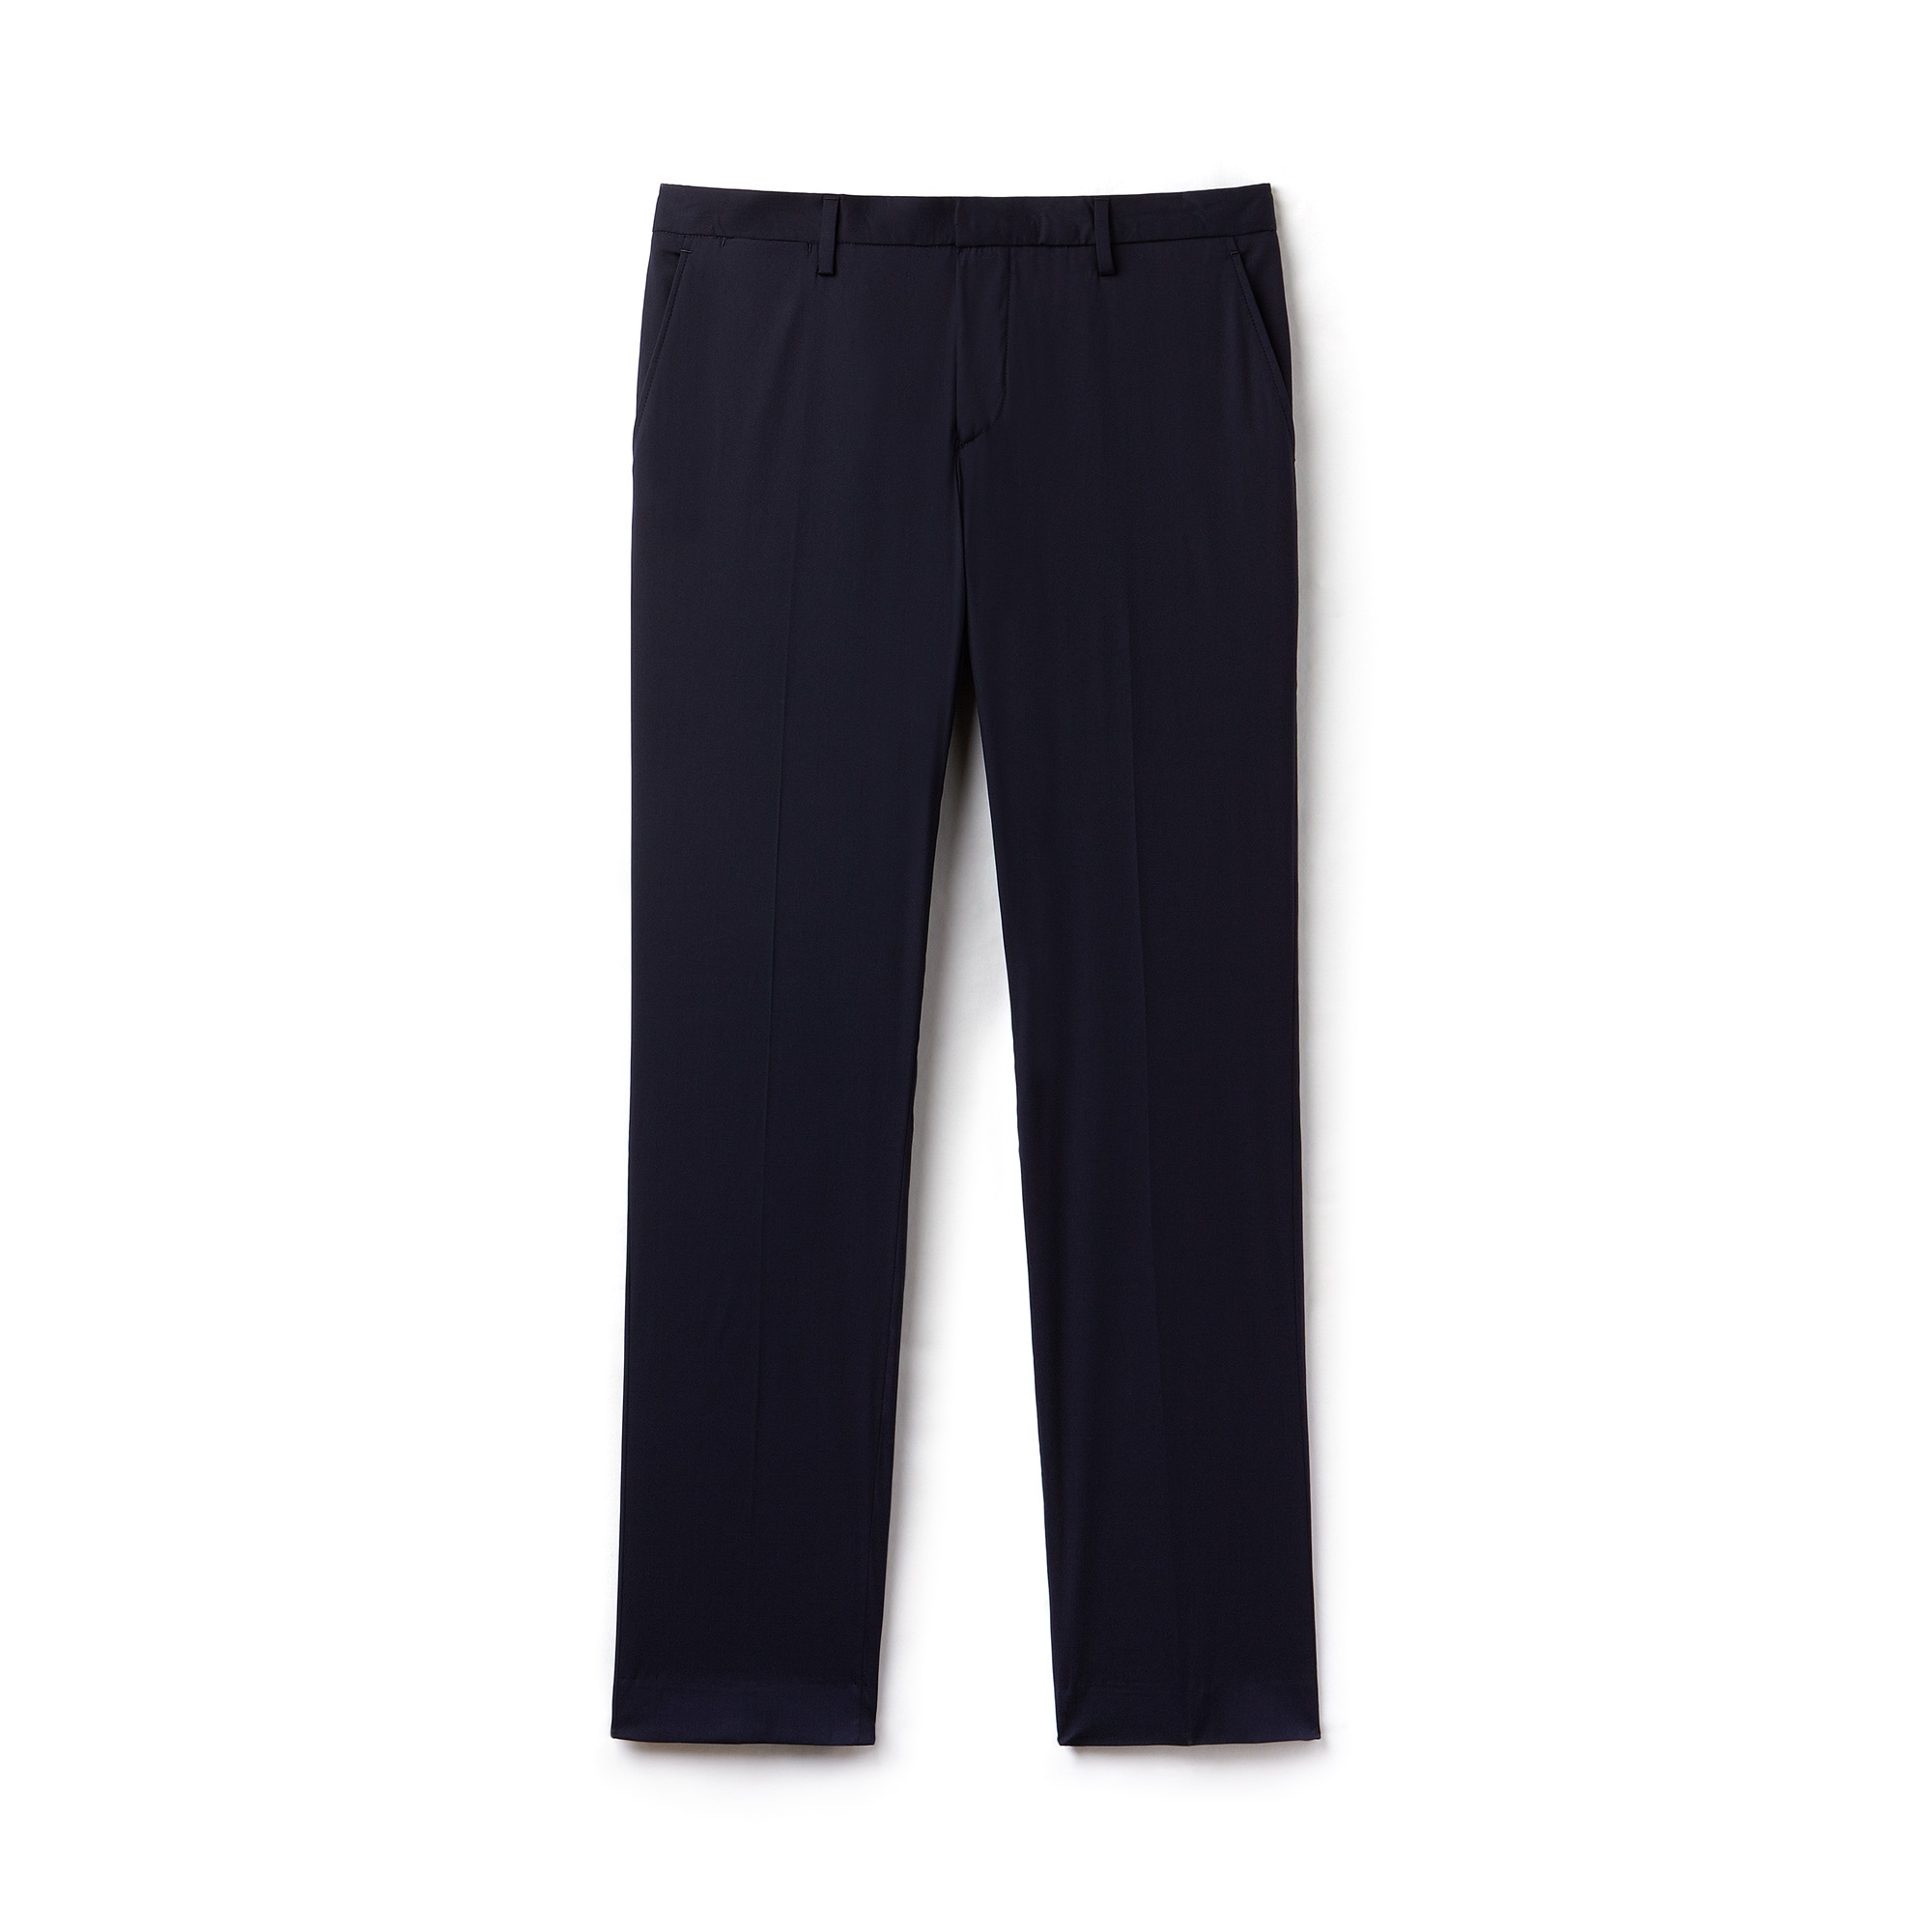 Pantaloni chino con pince regular fit Lacoste MOTION in popeline stretch tinta unita